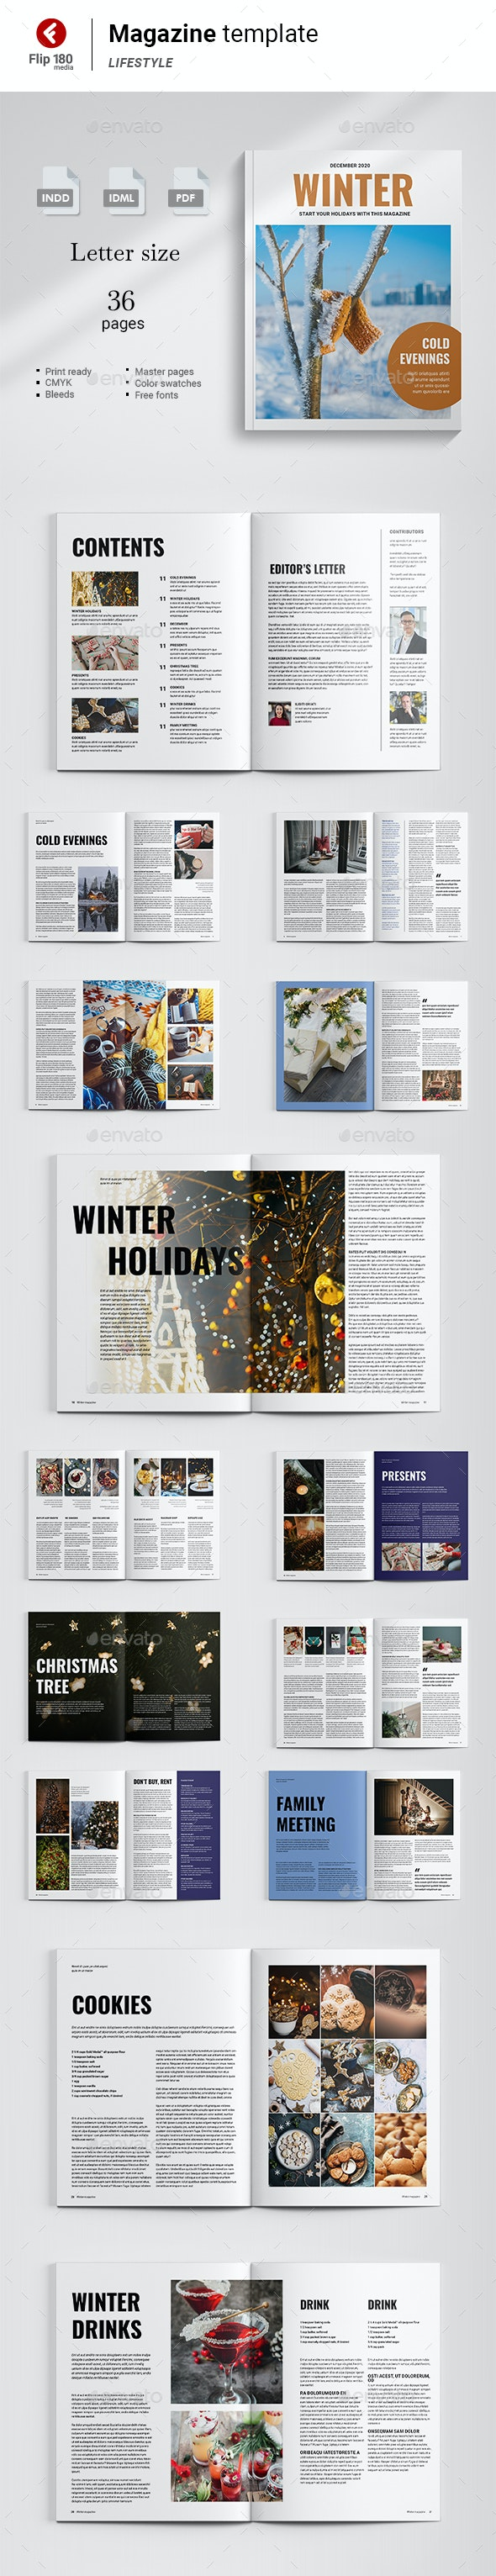 Winter Magazine Template - Magazines Print Templates